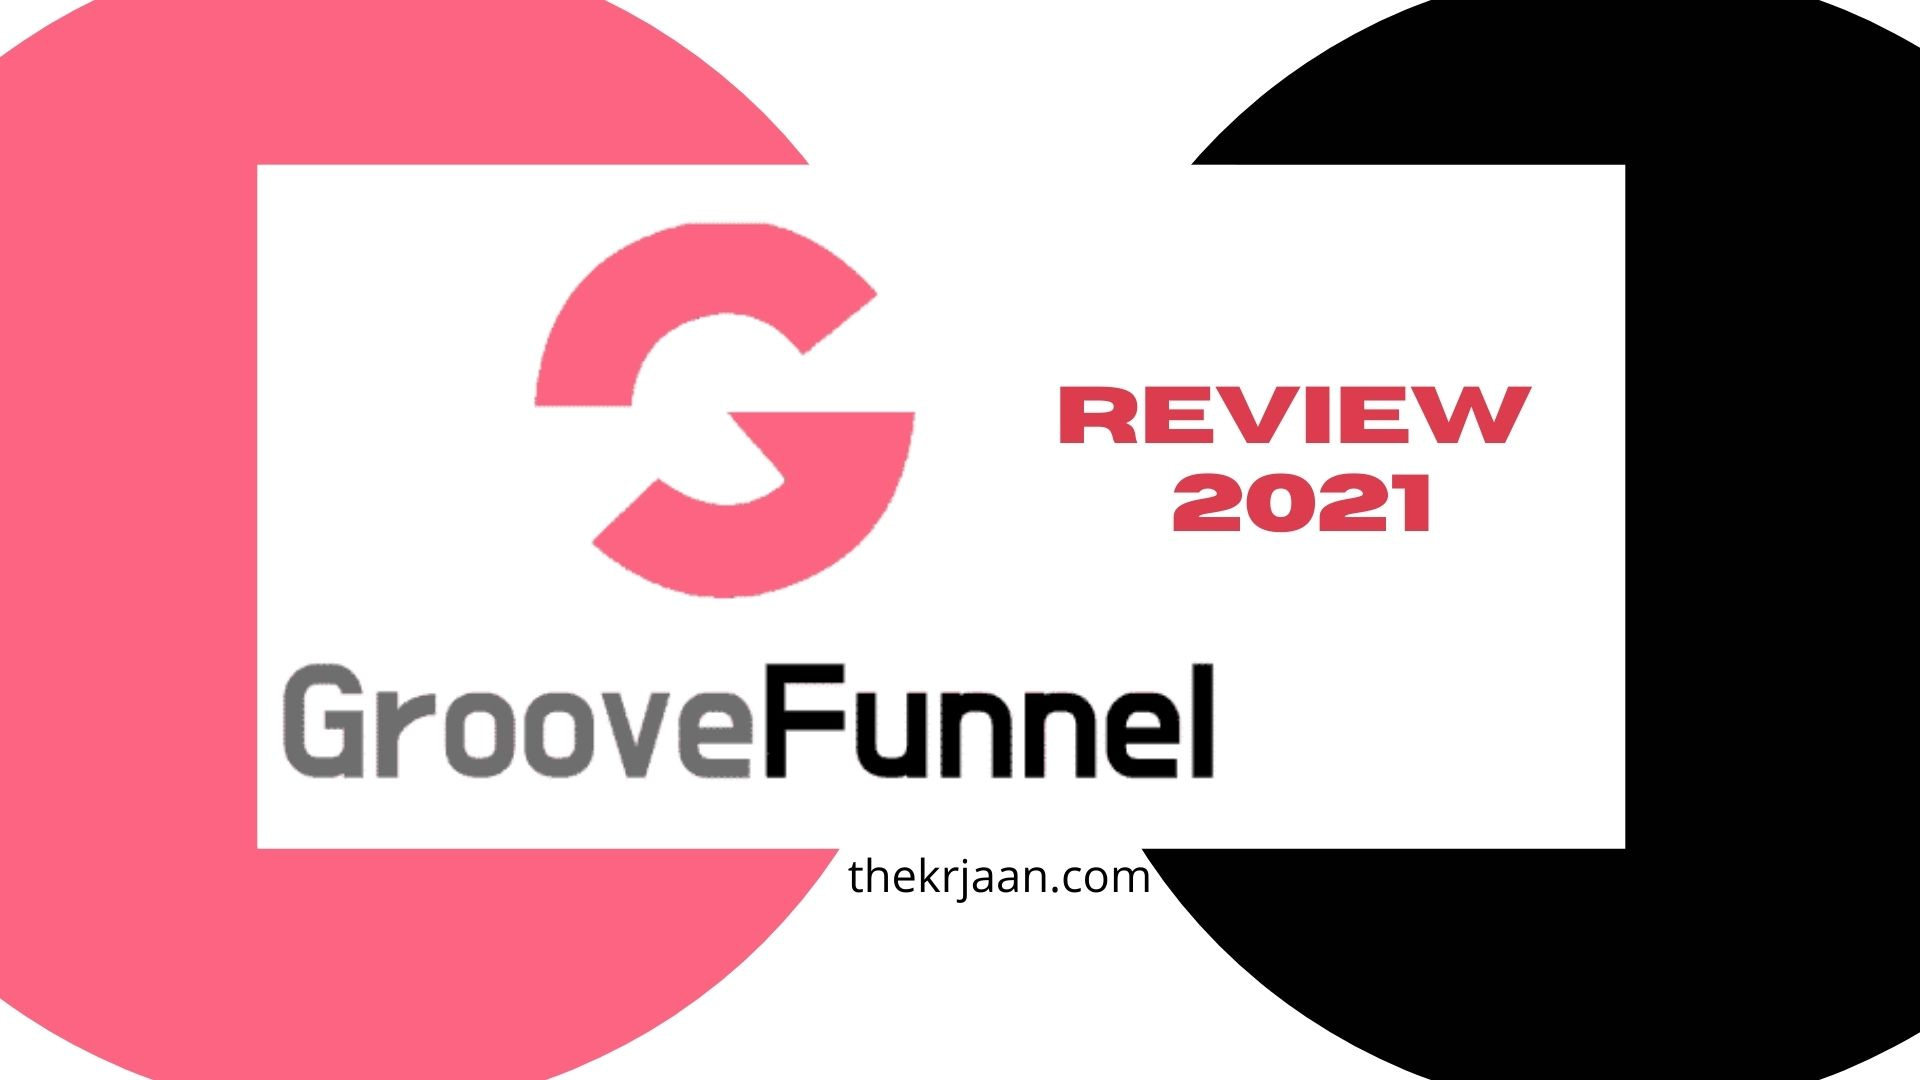 GrooveFunnels Review 2021 All About GrooveFunnels